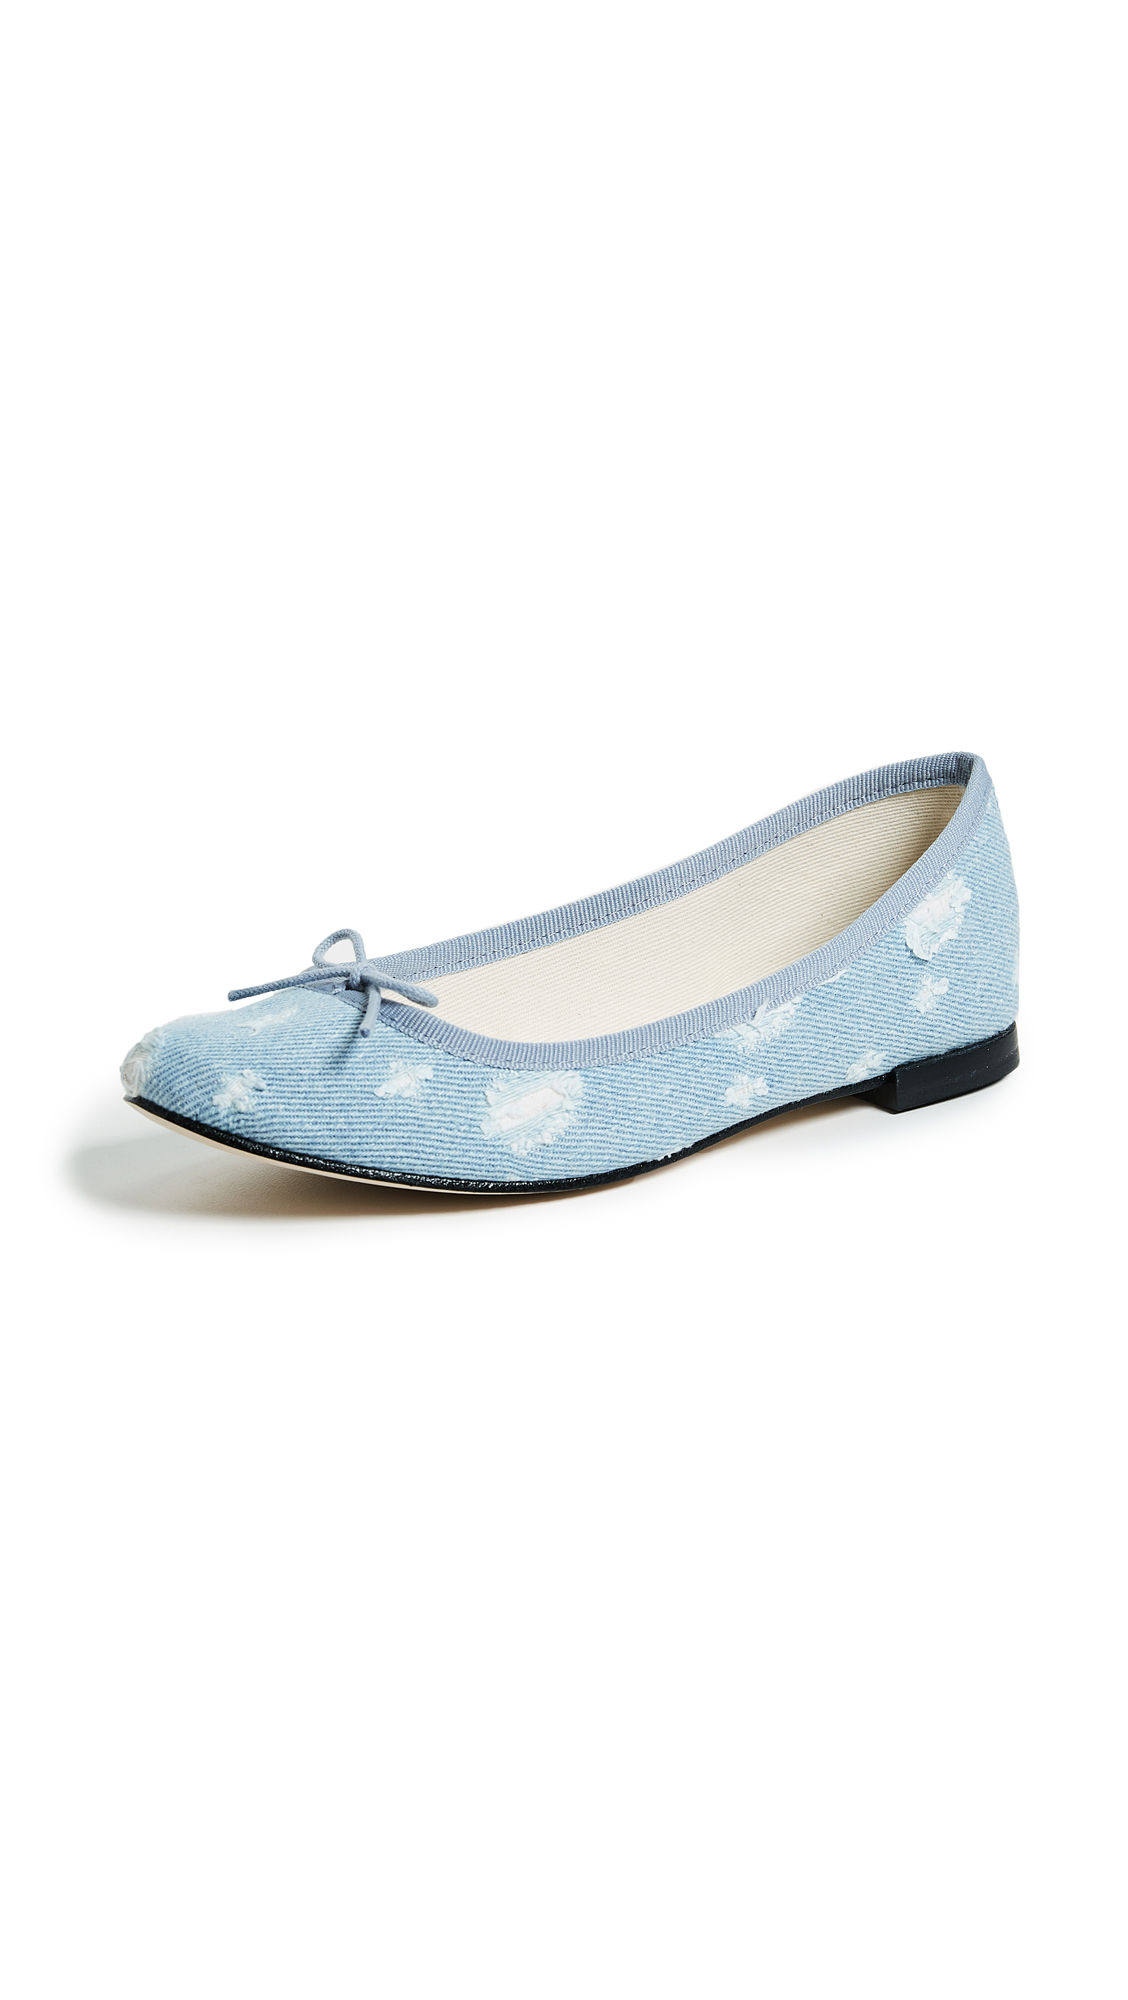 Repetto Cendrillon Ballet Flats - Blue